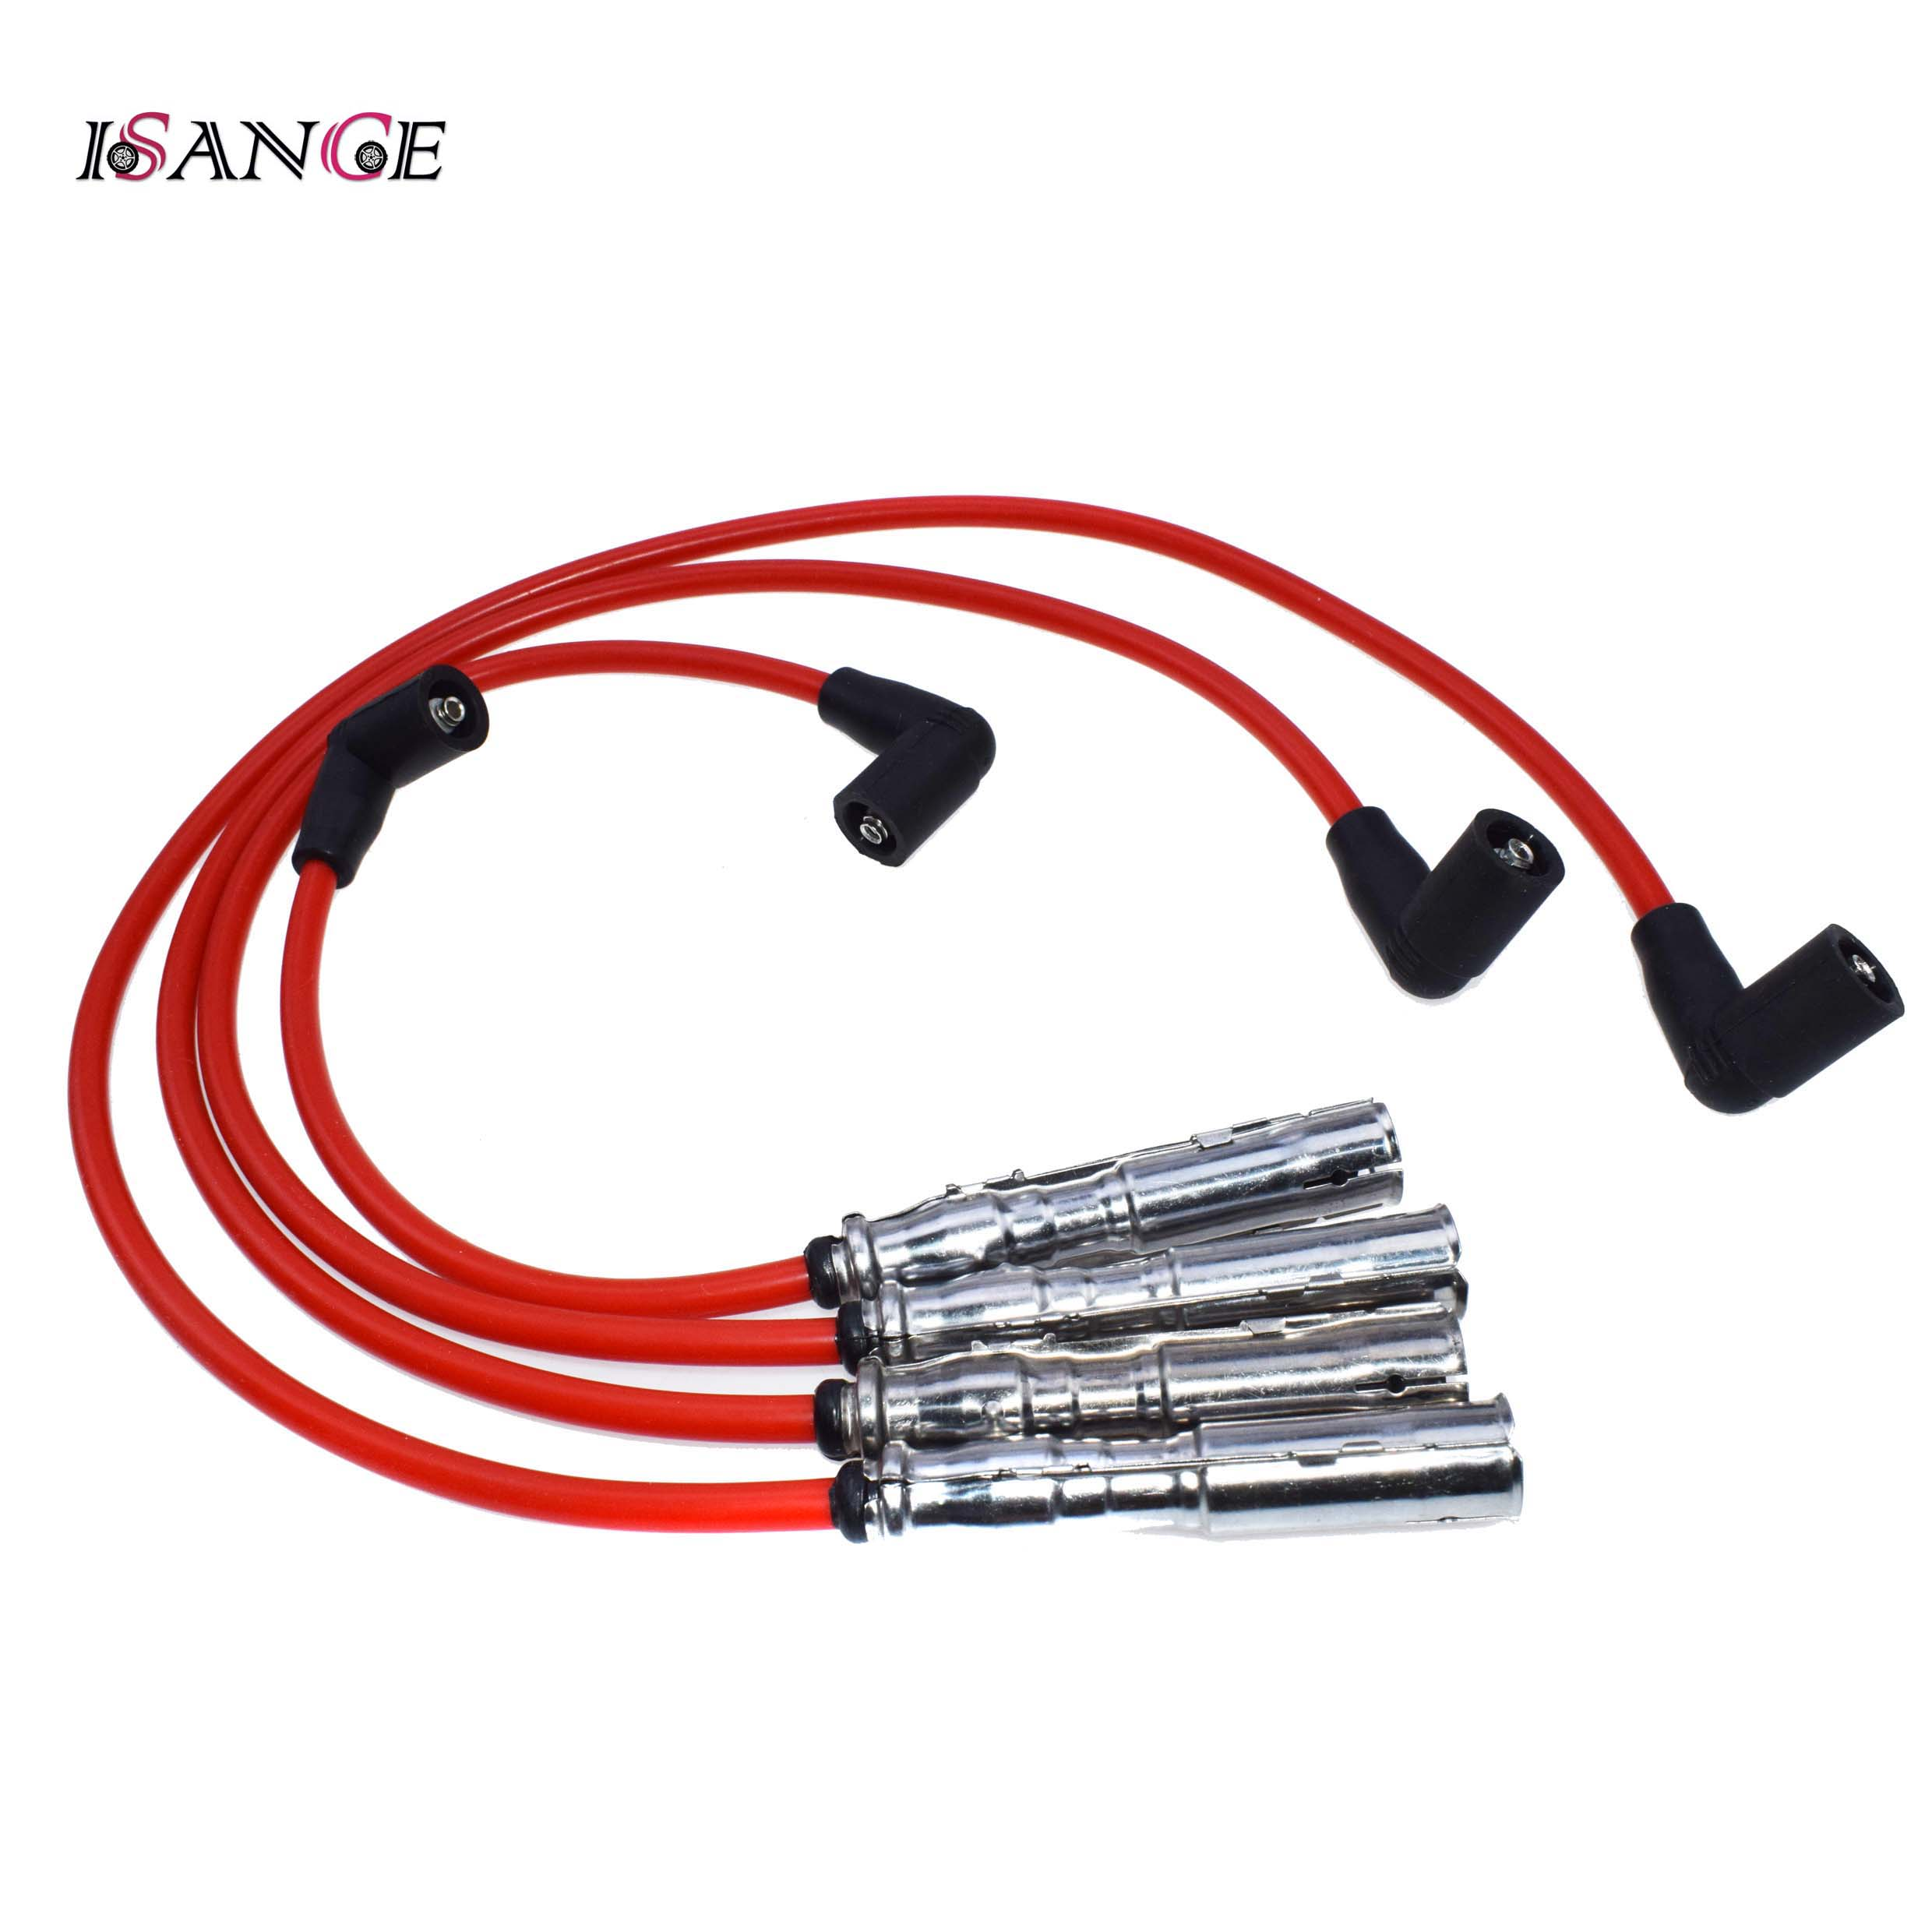 medium resolution of 1set oem ignition leads cables wires kit v6 2 4 2 8 for a4 a6 a8 passat superb 078 905 113 078 905 531 532 533 534 535 536 b